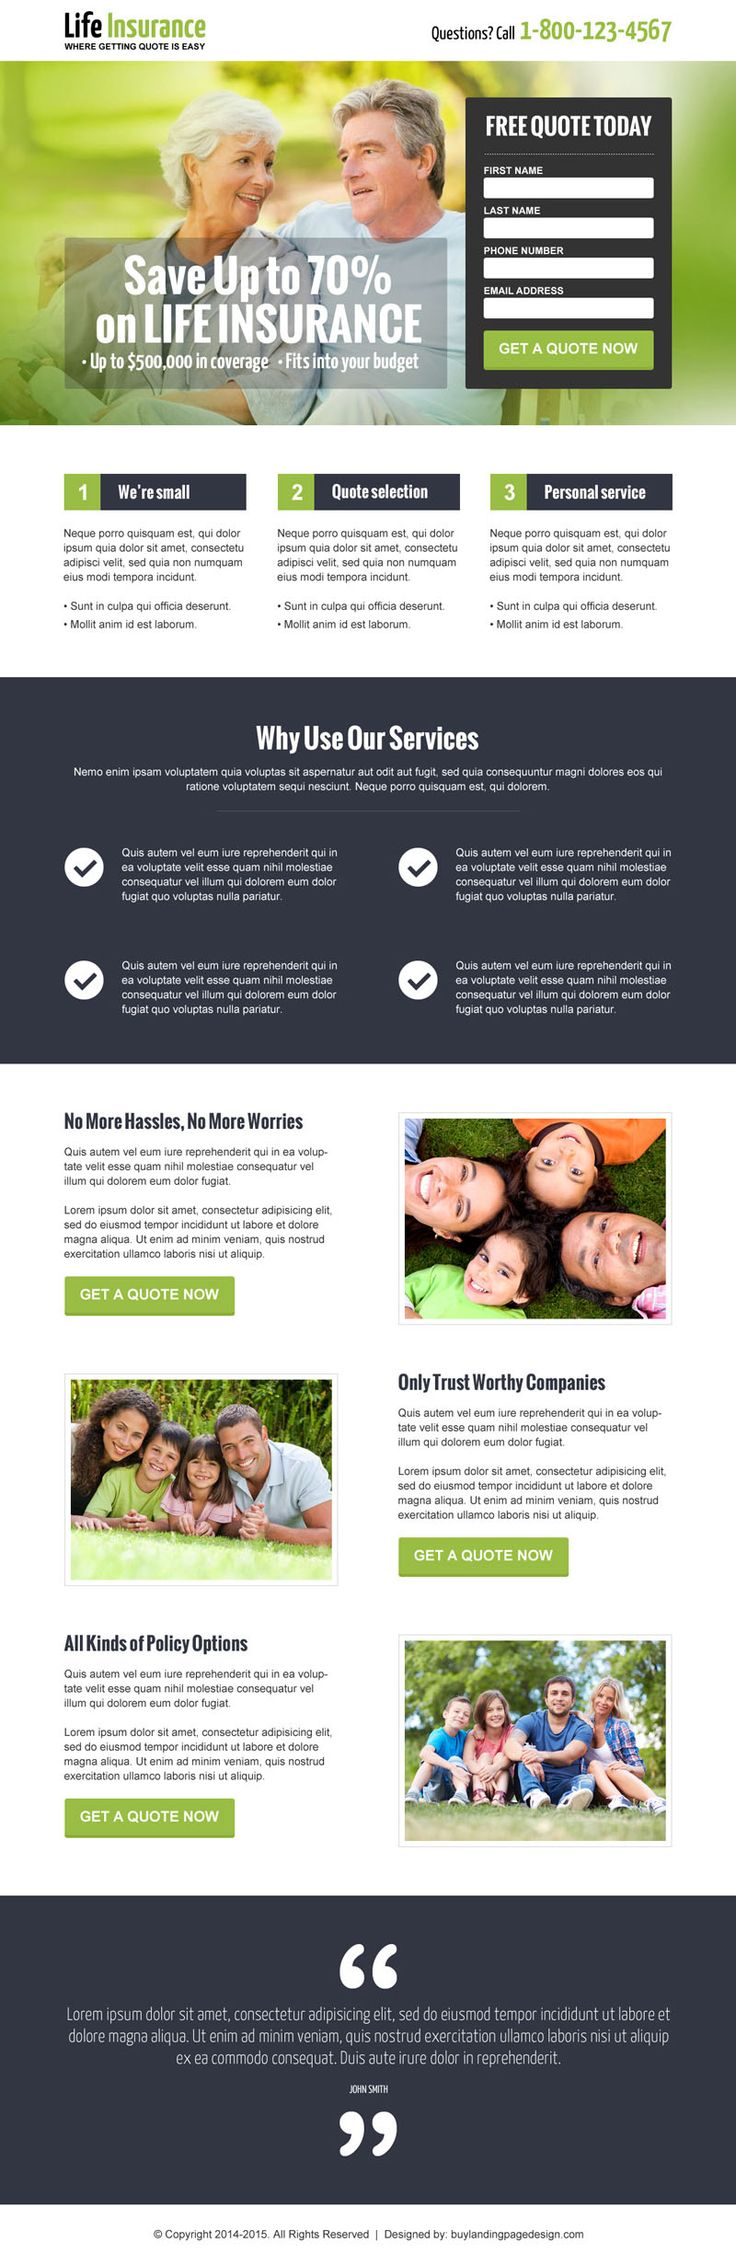 life insurance landing page designs to capture leads online | landing page designs